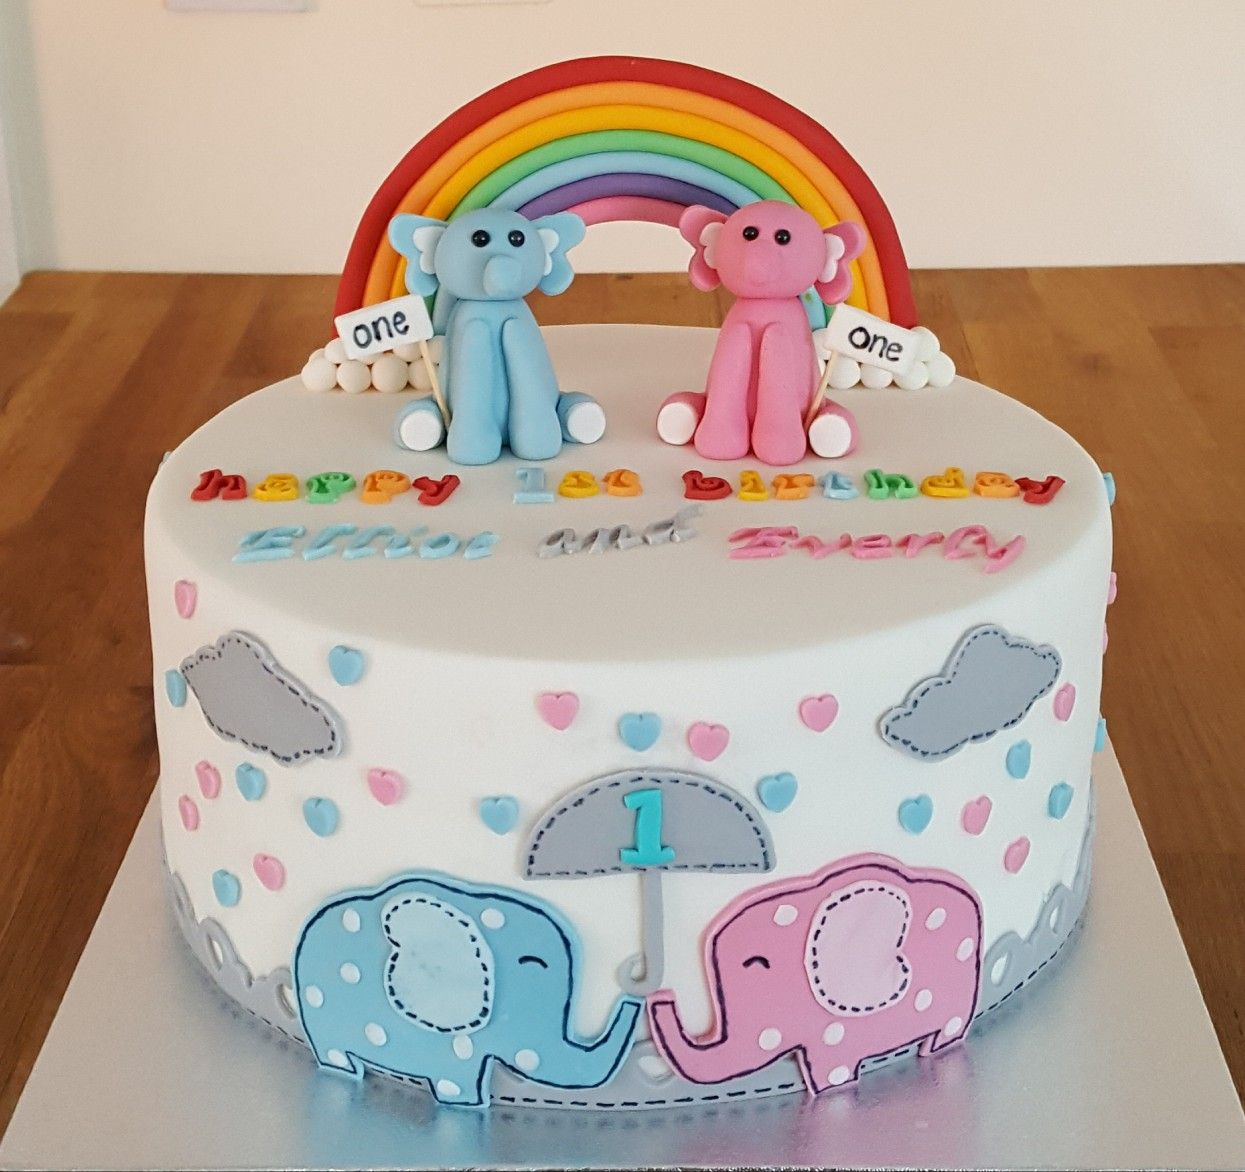 1st Birthday Cake For Twins Boy Girl With Elephant Rainbow